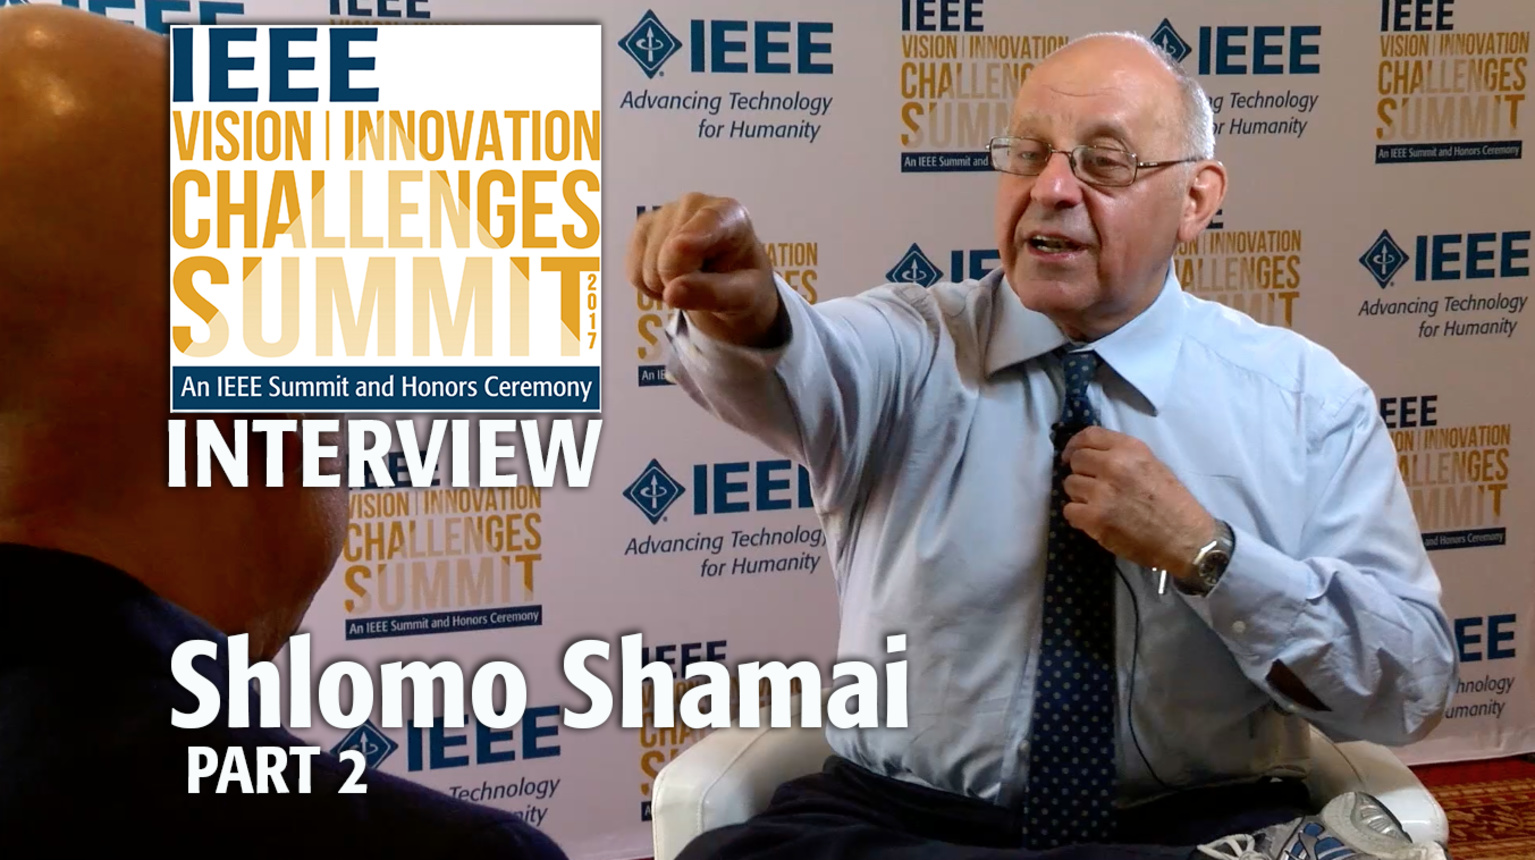 Interview with Shlomo Shamai, Part 2 - IEEE VIC Summit 2017